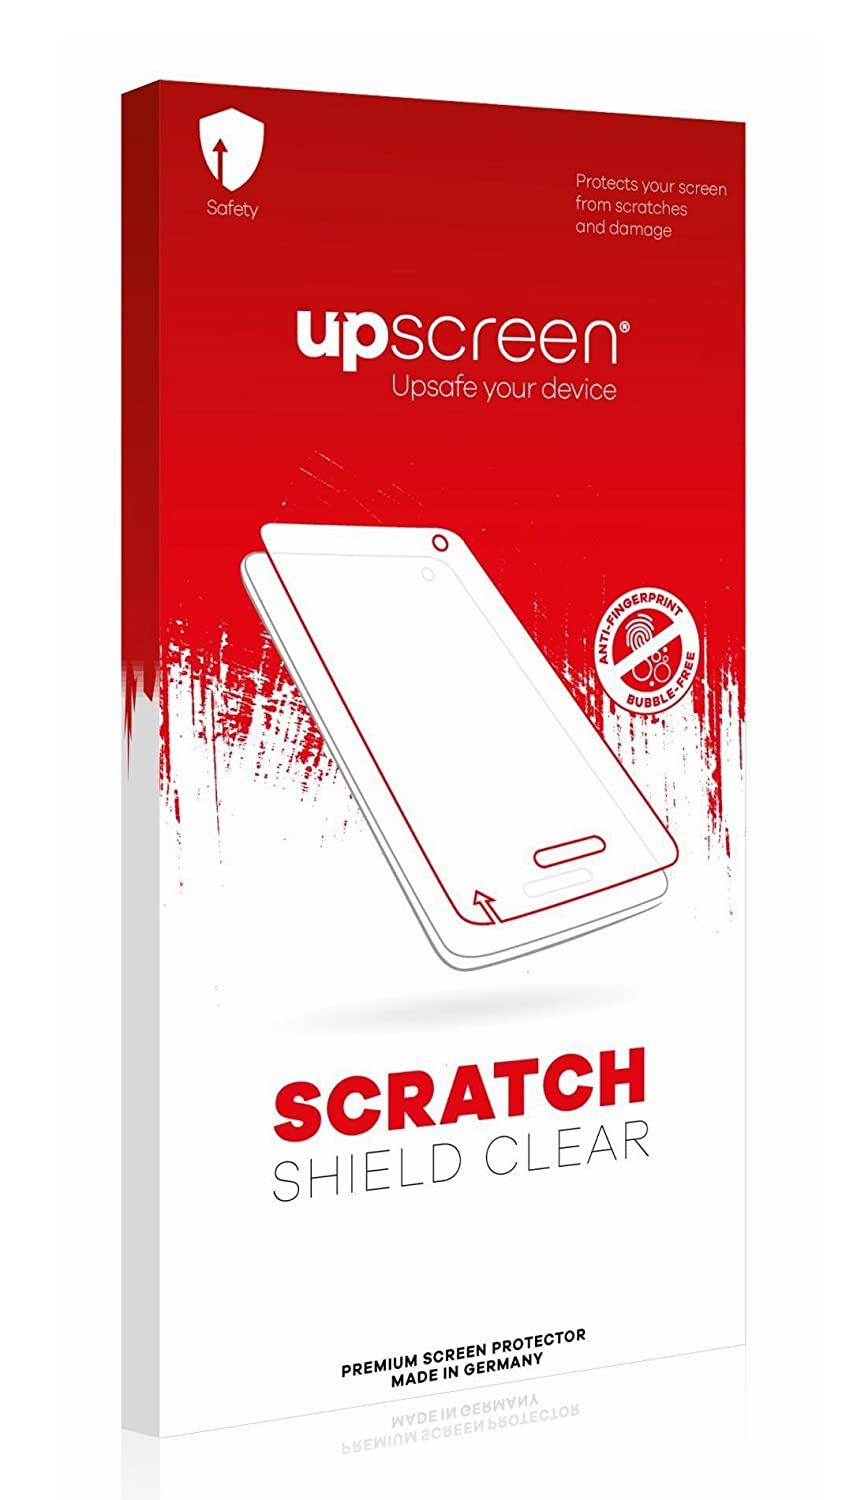 upscreen Scratch Shield Clear Screen Protector for GPD XD, Strong Scratch Protection, High Transparency, Multitouch optimized